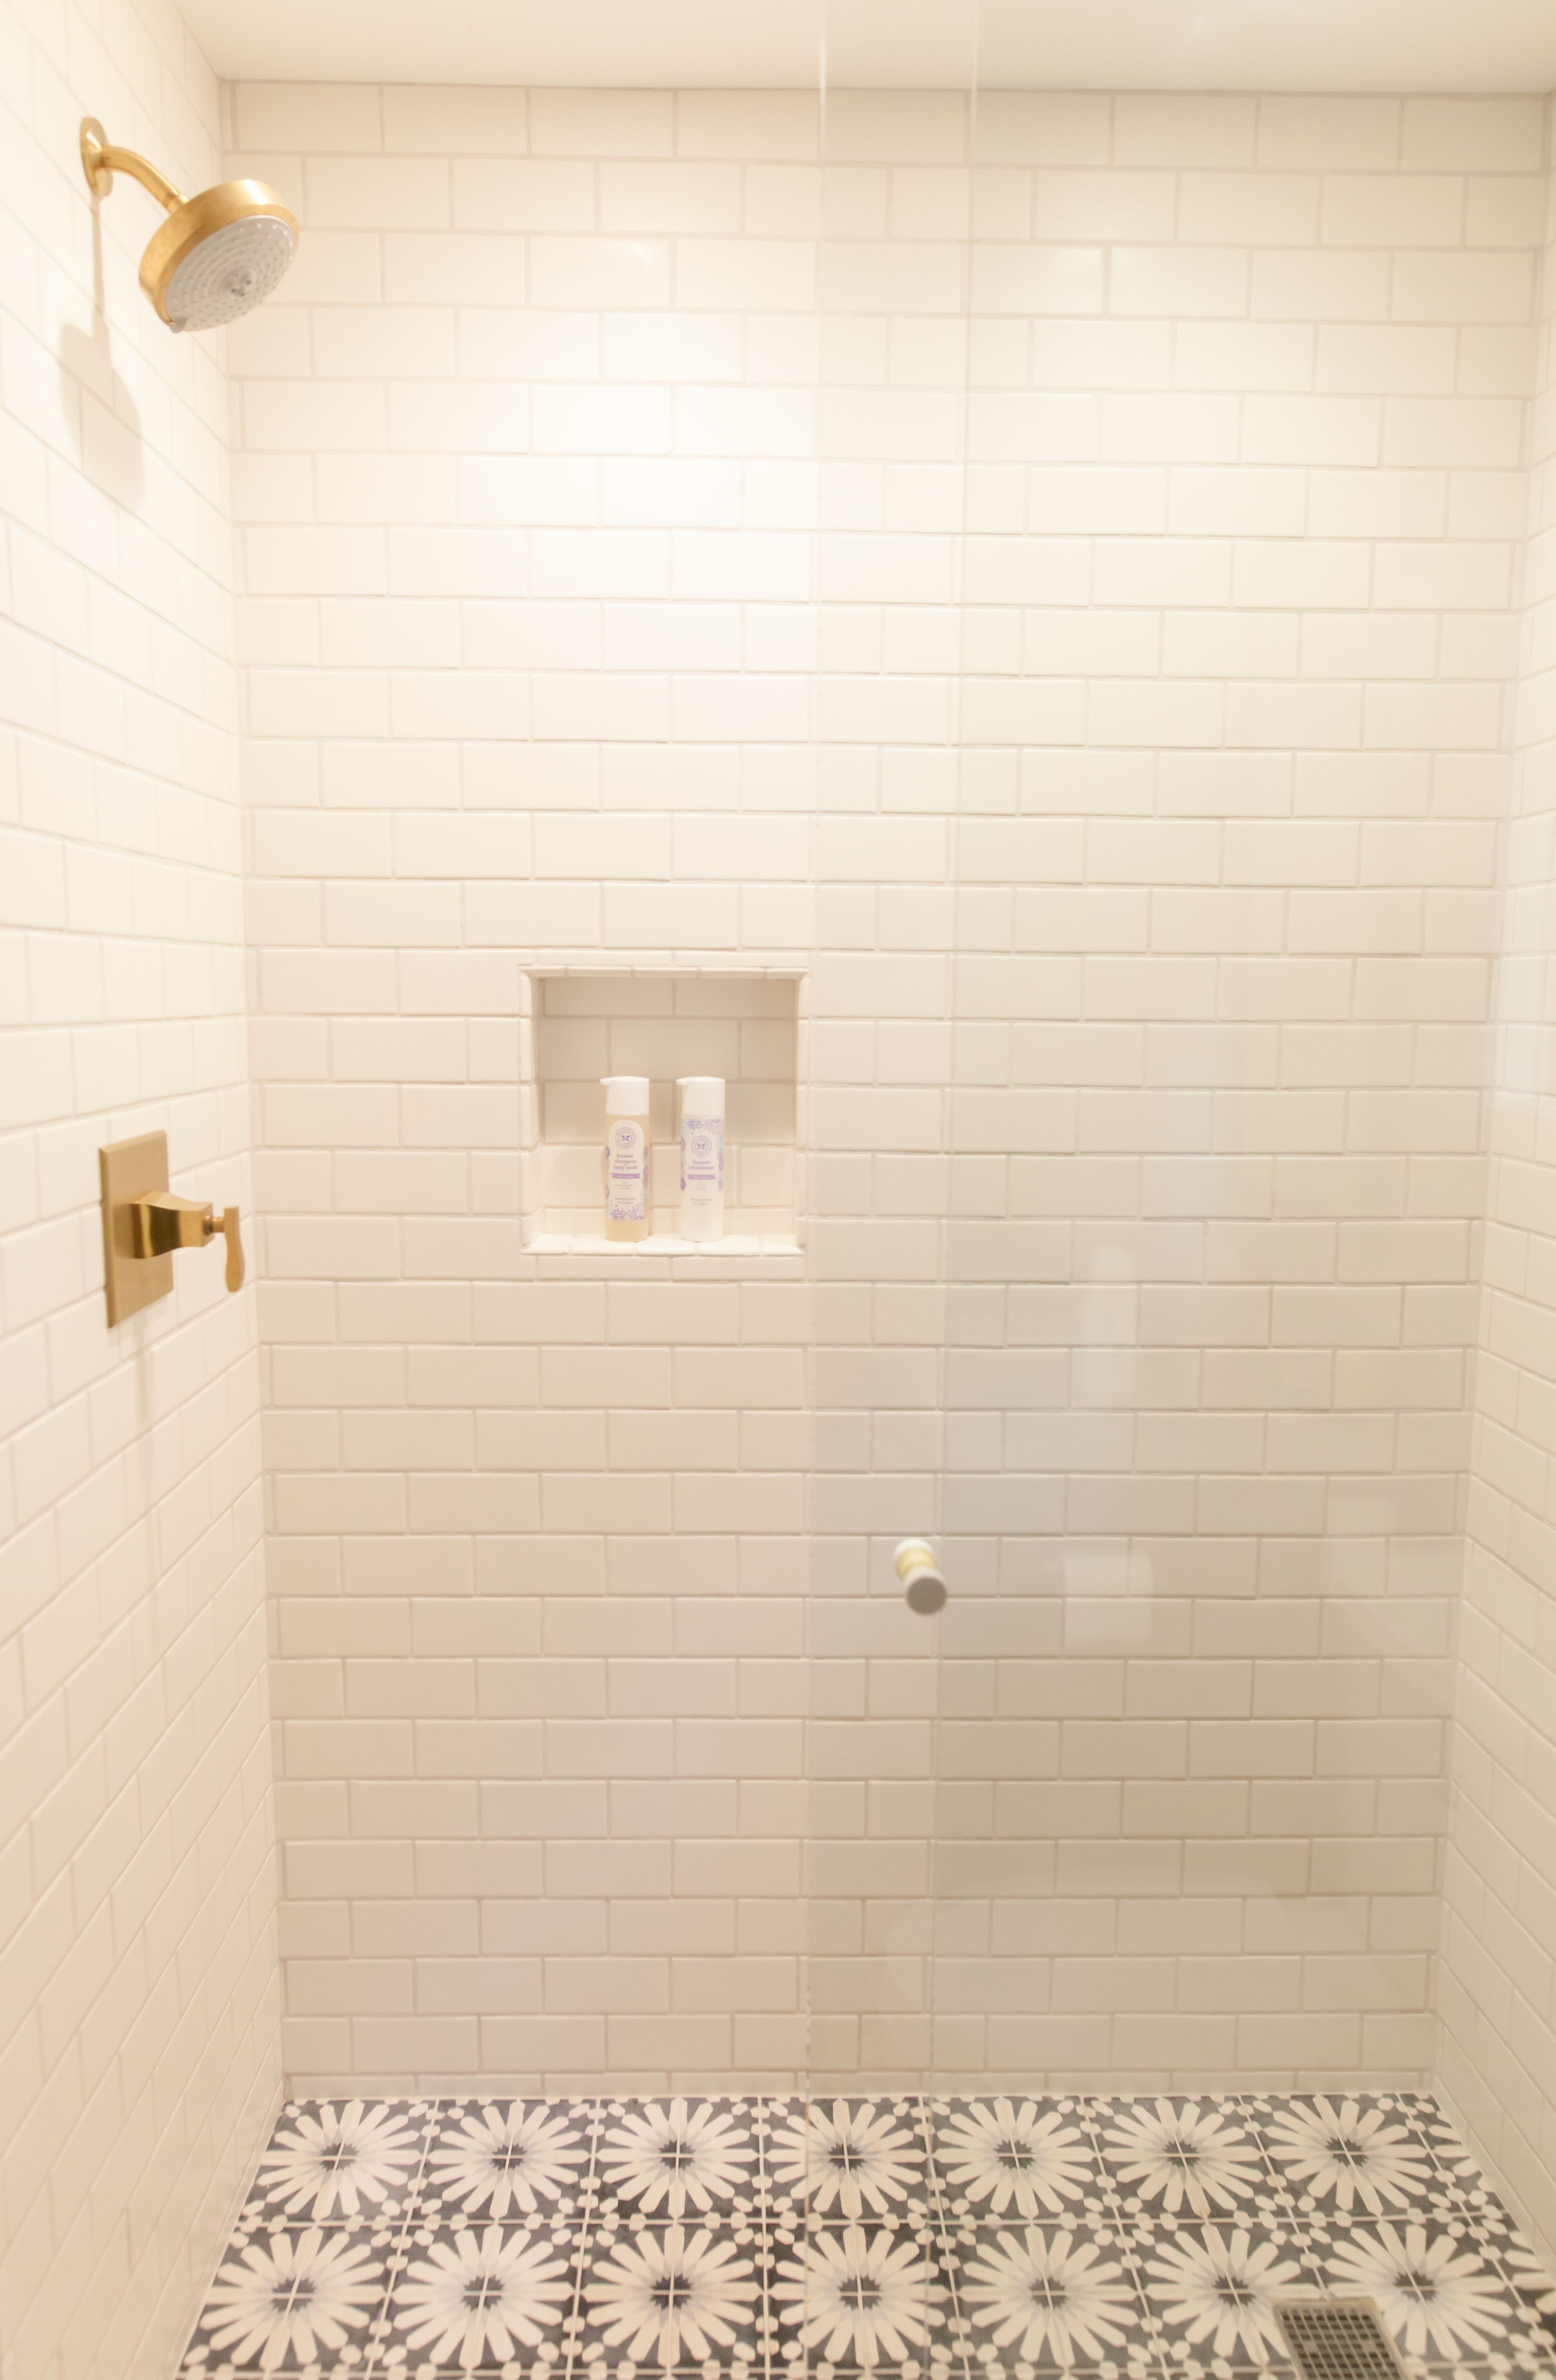 correct part a of how your shower tiled to for placement niche recessed build